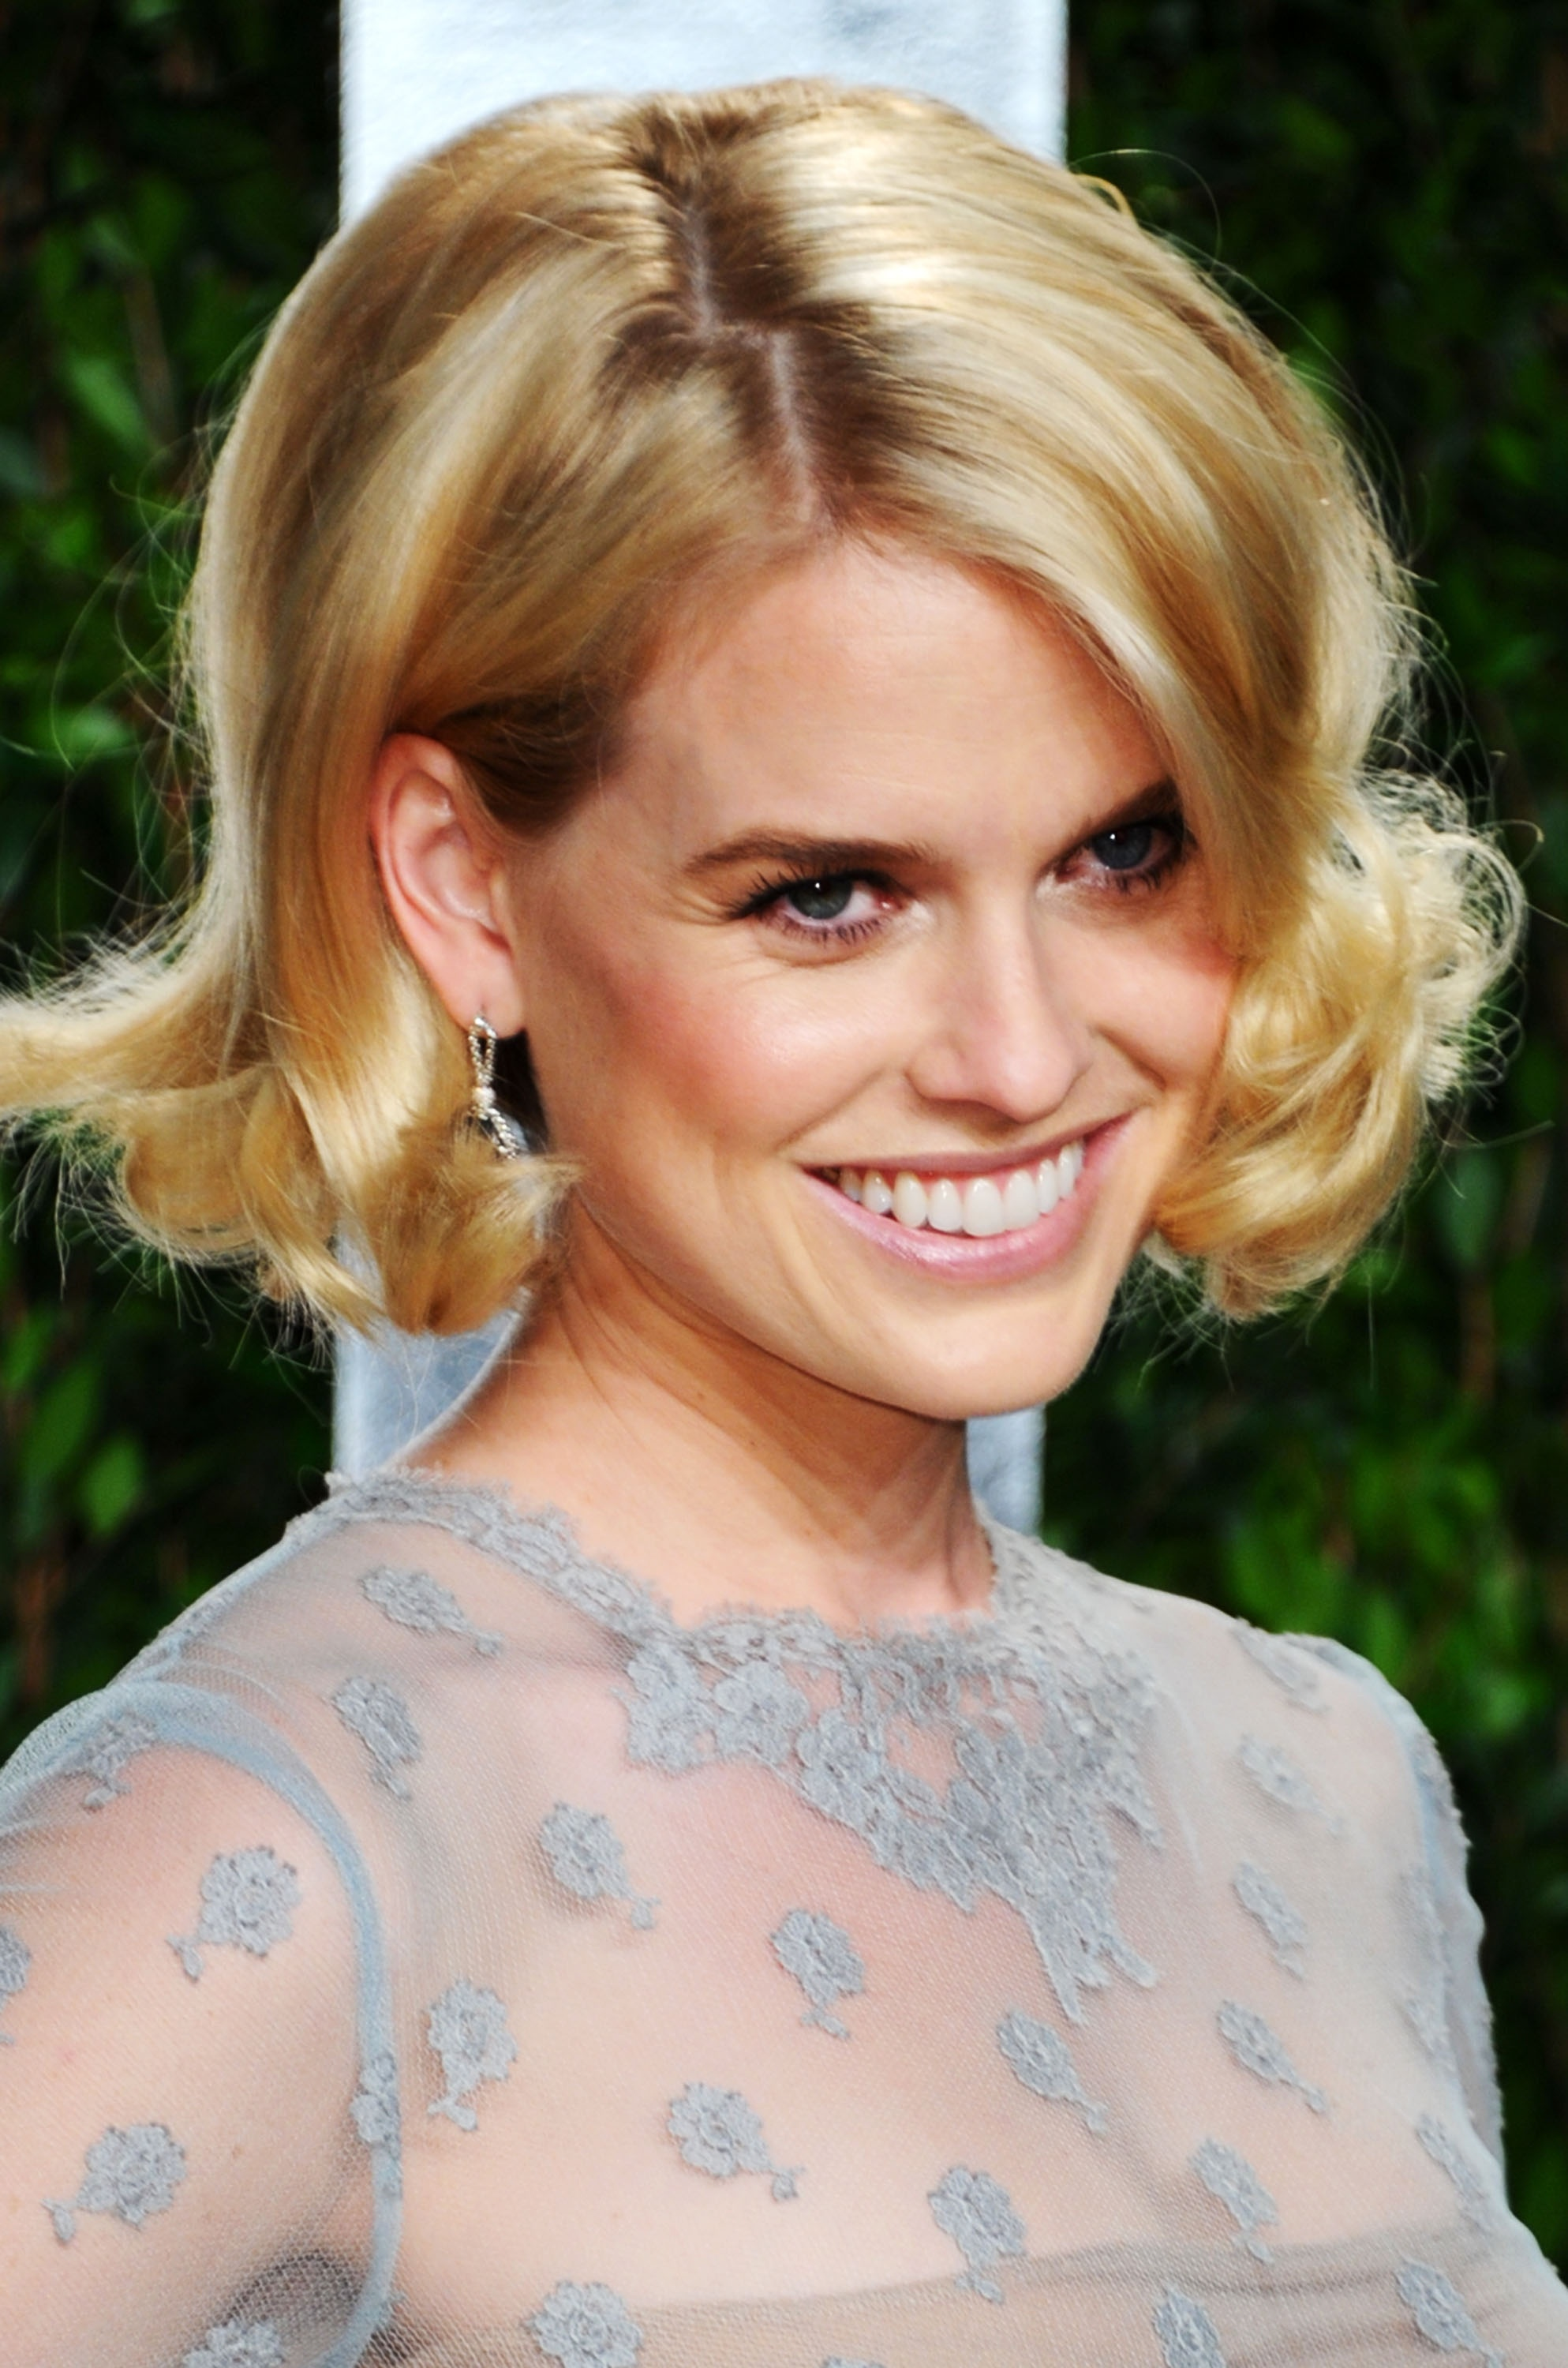 Элис Ив, фото 323. Alice Eve 2012 Vanity Fair Oscar Party - February 26, 2012, foto 323